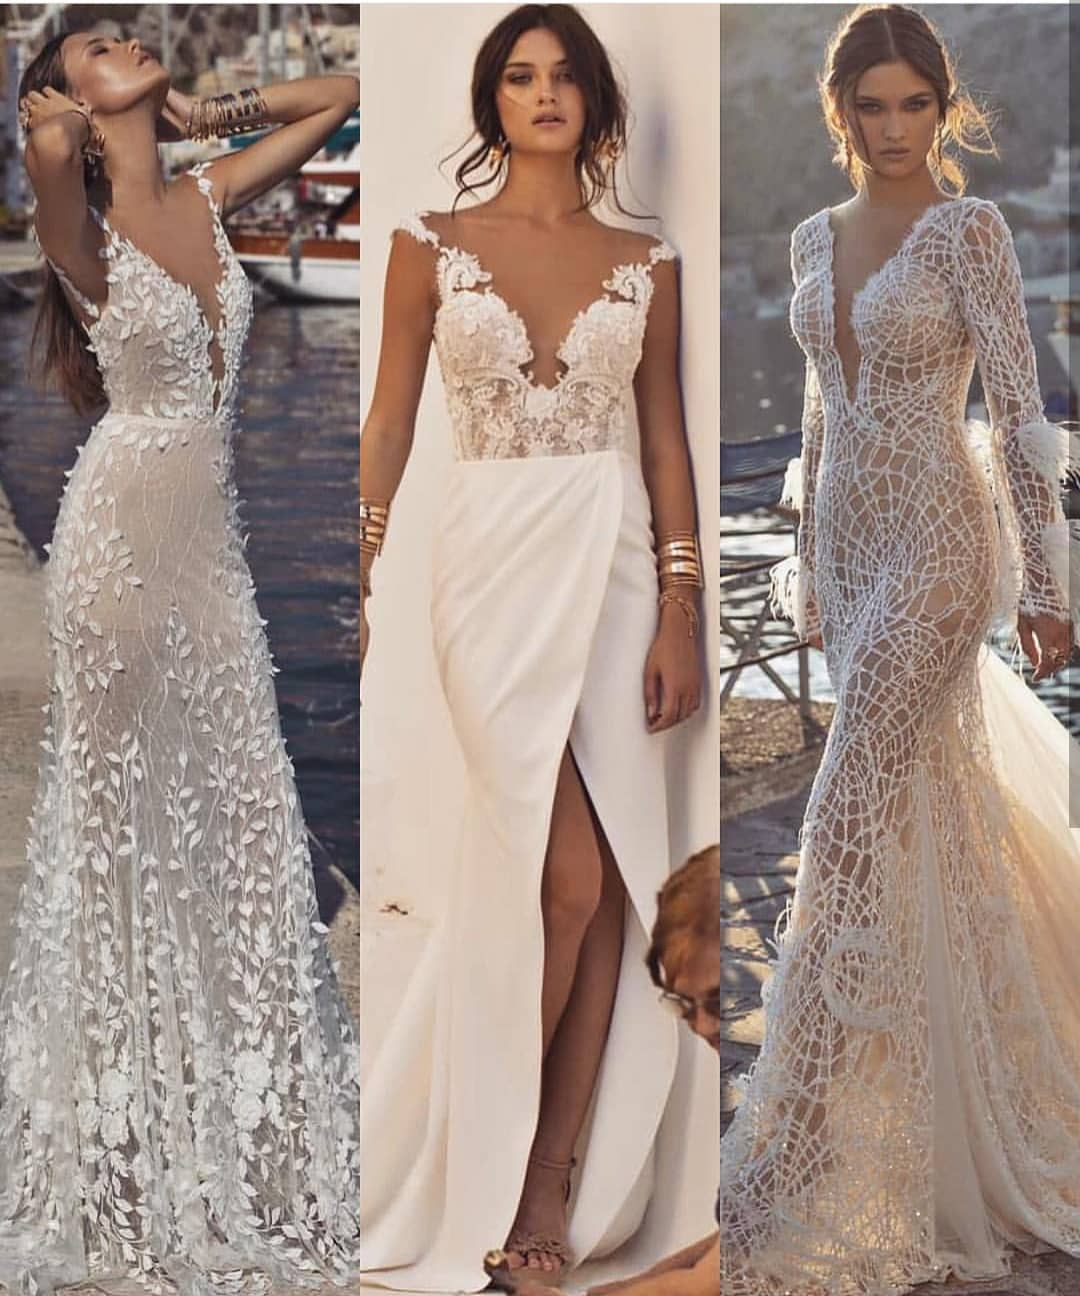 White Lace Wedding Gowns For Summer 2020